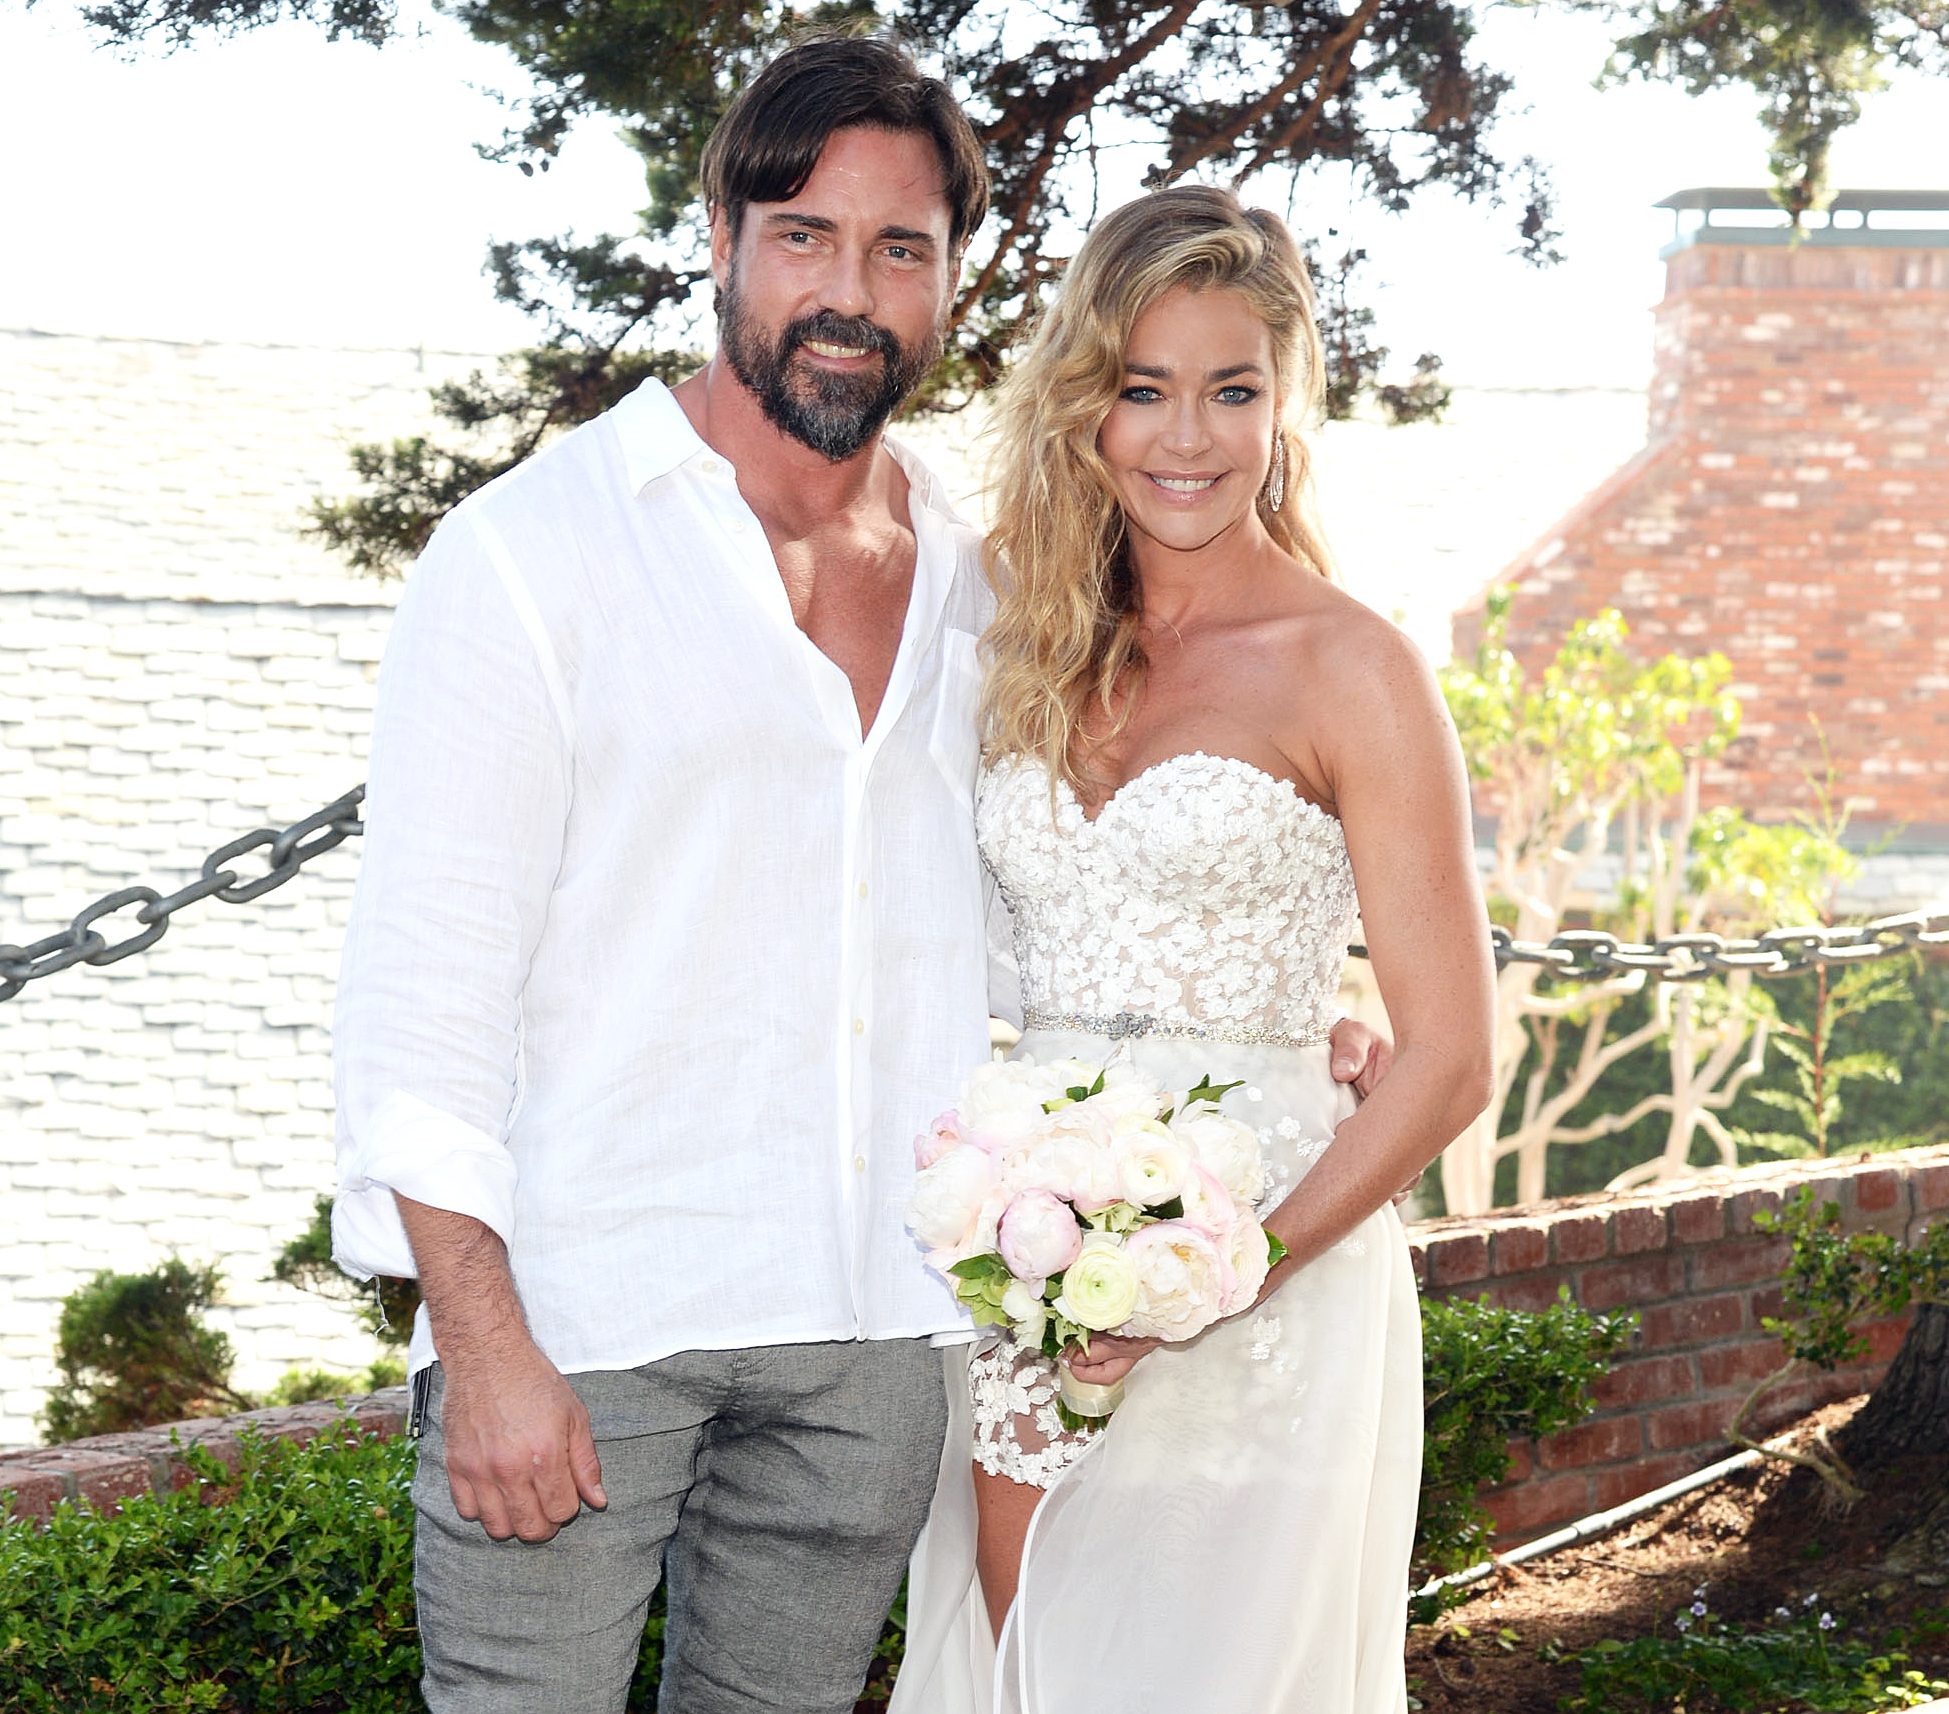 Brooke Mueller Congratulates Denise Richards wedding - Aaron Phypers and Denise Richards are married in Malibu, California on September 8, 2018.